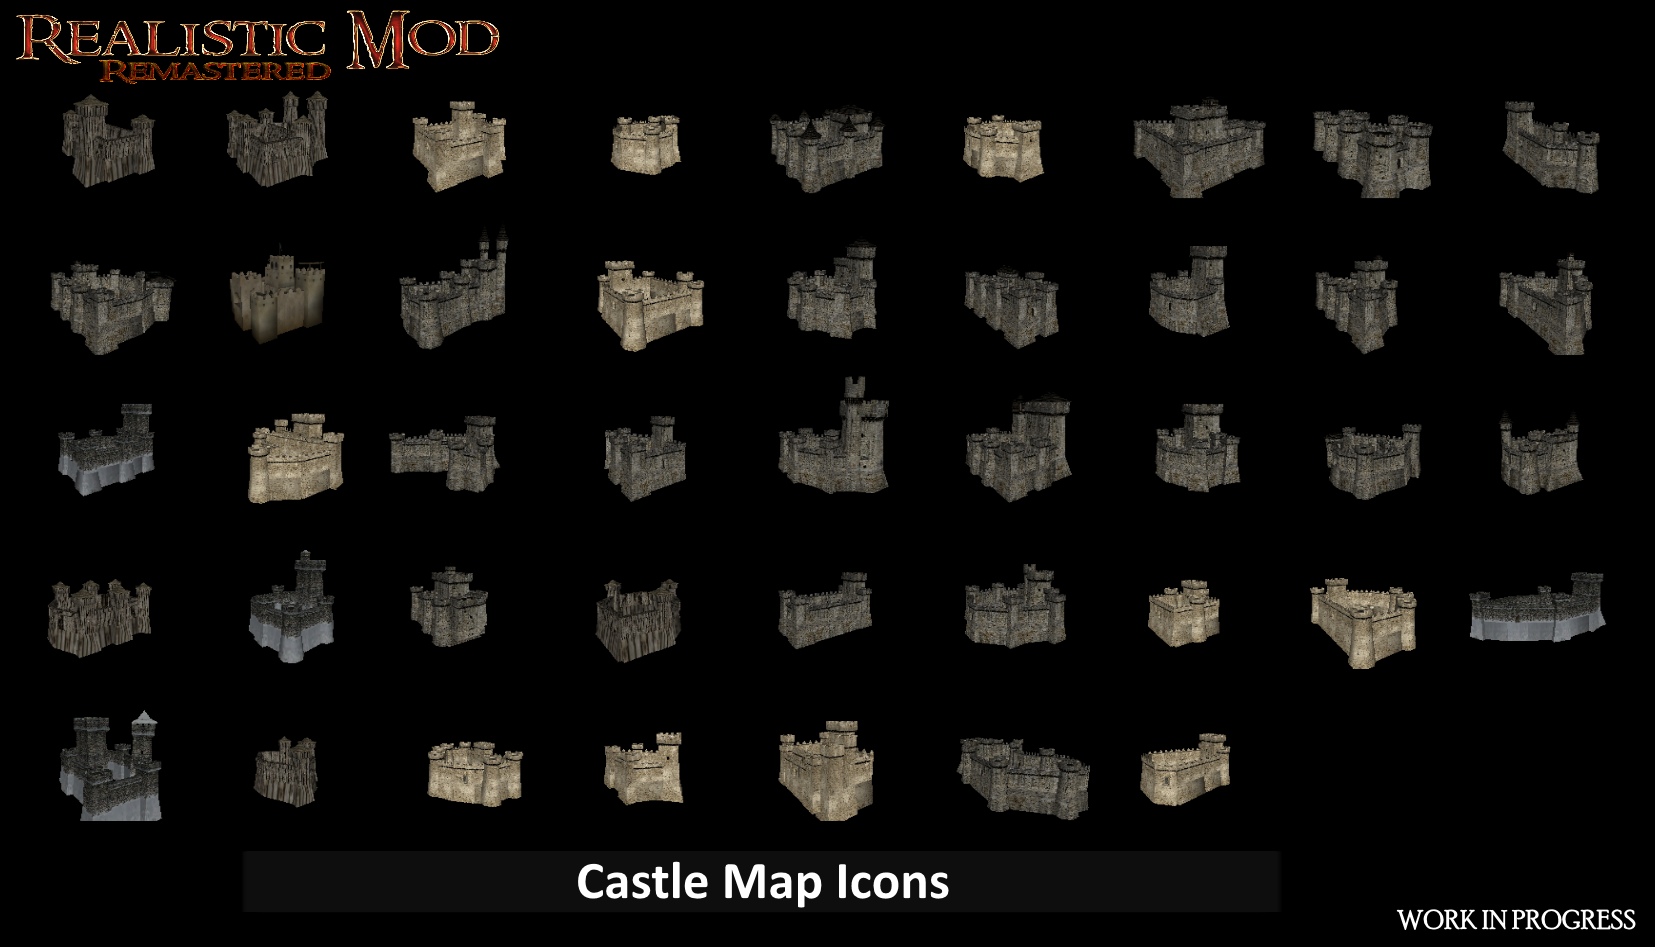 Castle Map Icons Hd Image Realistic Mod Remastered For Mount